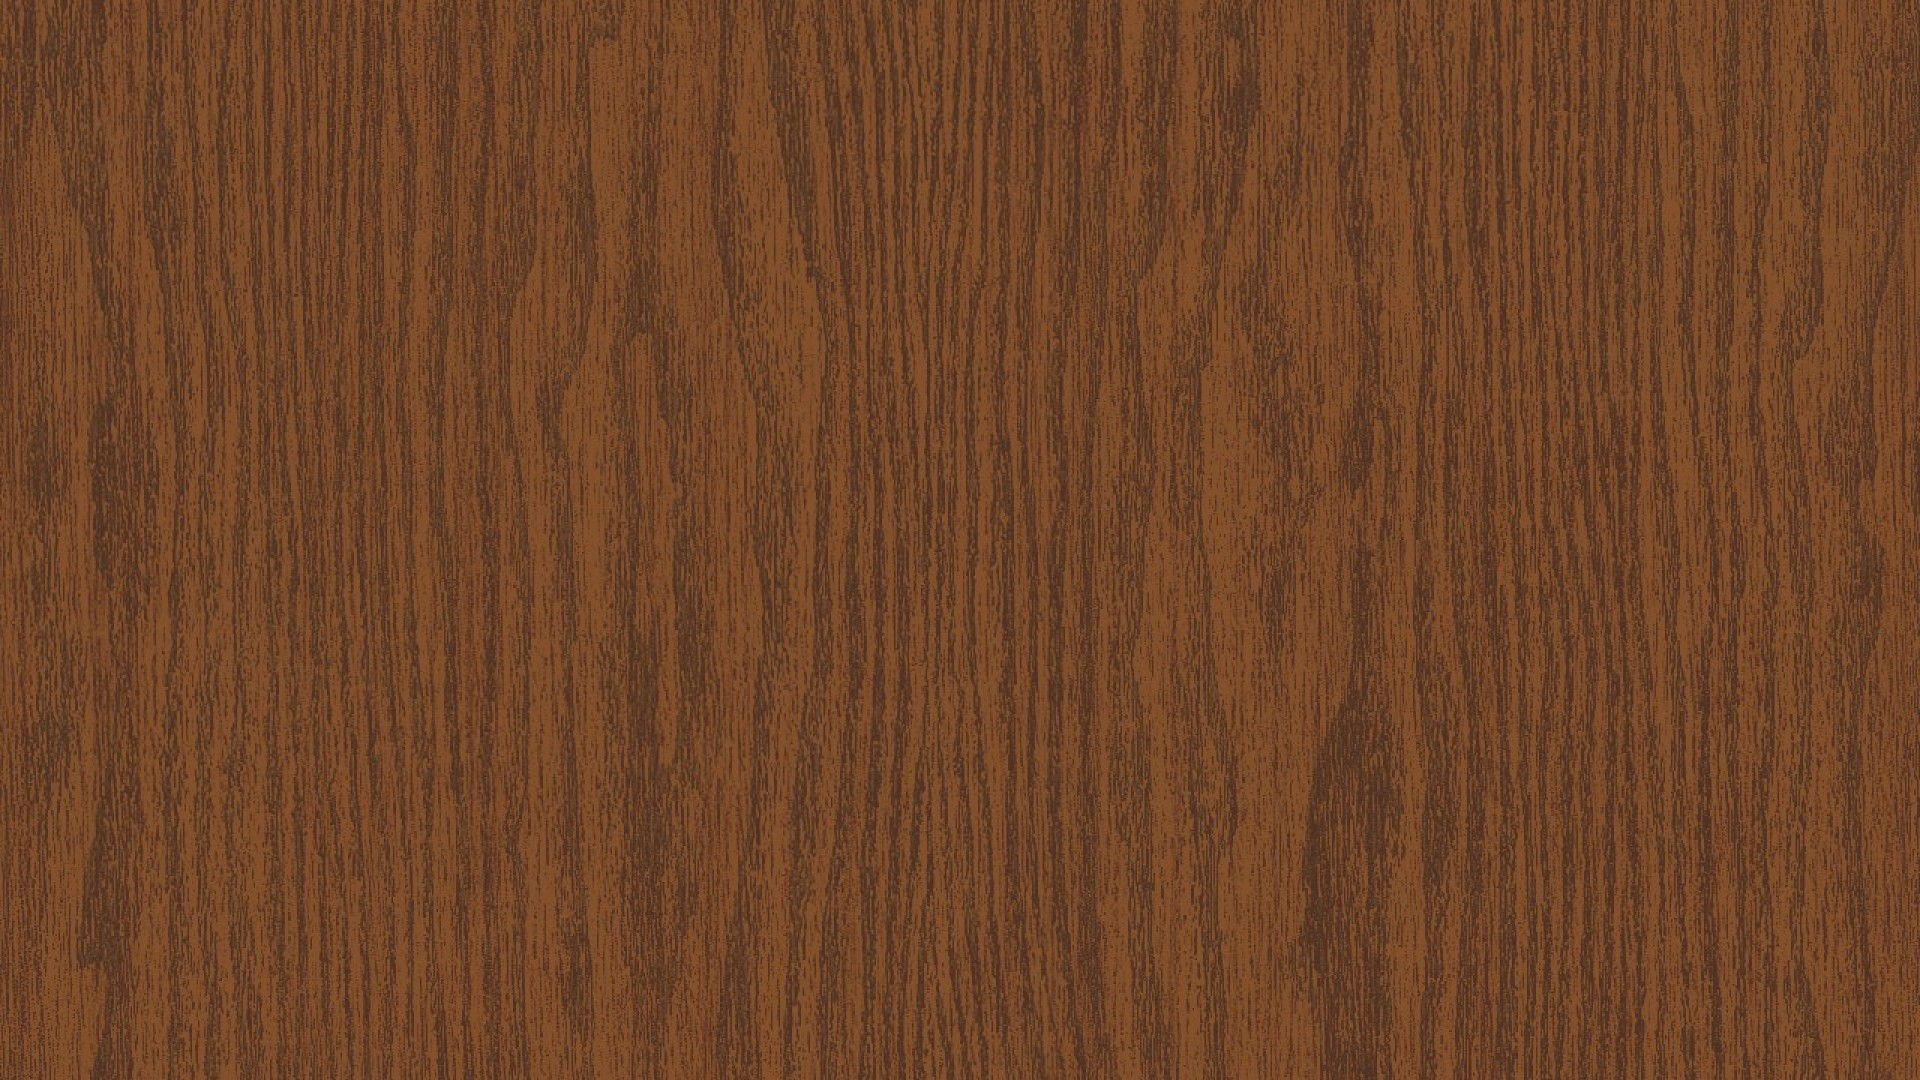 Wood Solid Oak 1920x1080 64695 by hexdef101 on DeviantArt